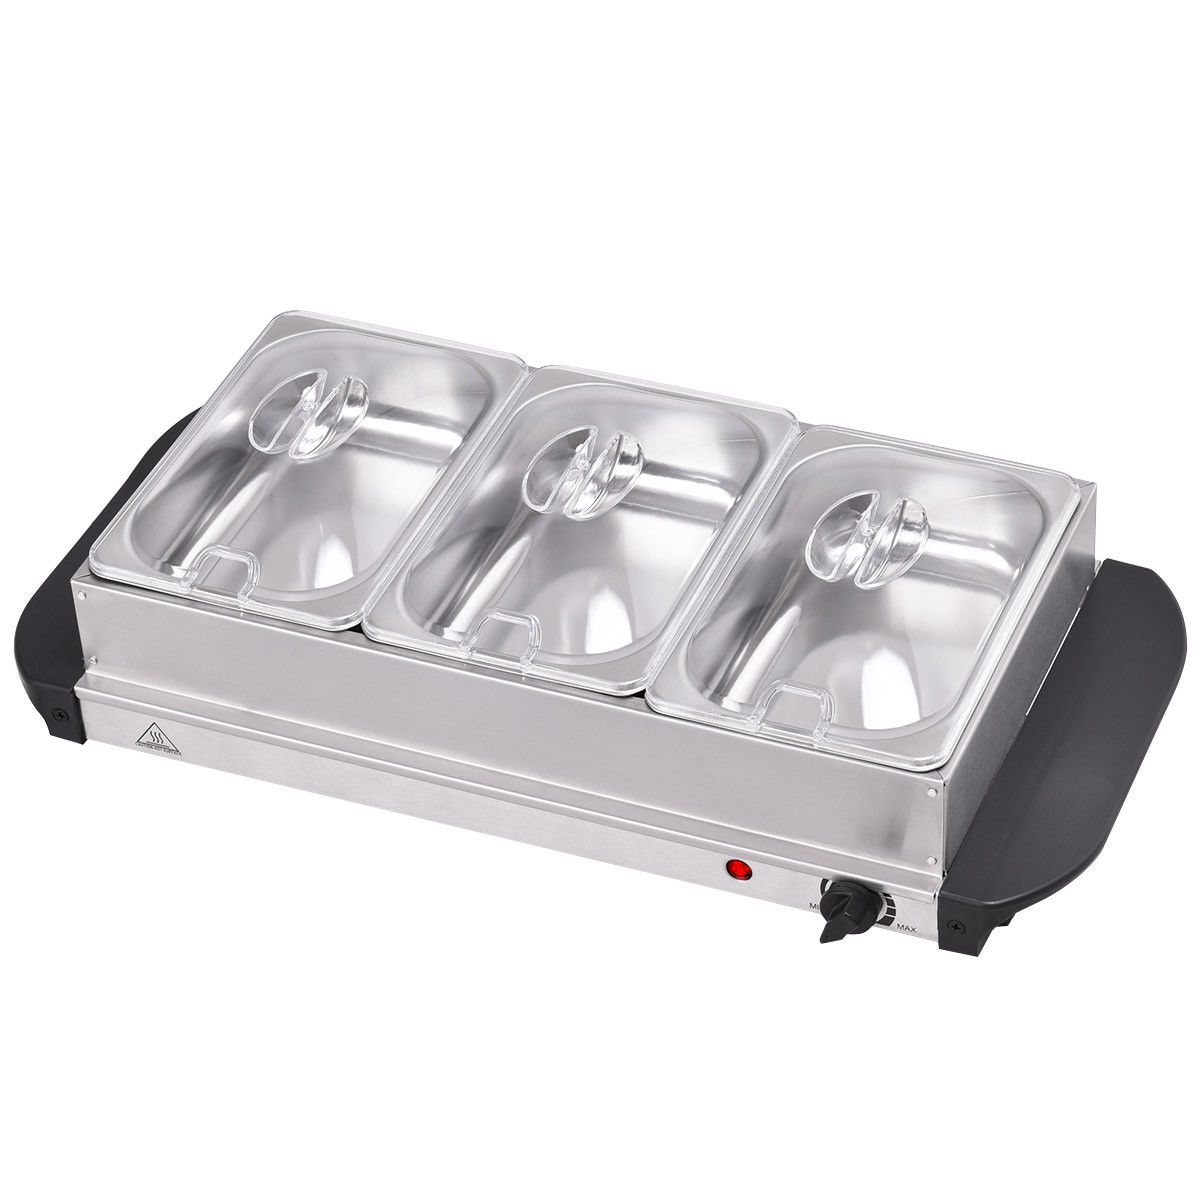 The buffet food sever can keep food hot for long periods of time, making it ideal for all types of catering situations. Cool touch handles and non slip feet great for buffets bbq's and parties. The large hot tray area has 3 removable trays for keeping food warm ensuring you can serve it at the right temperature. Every time, they will never know when the food was made because the taste of these foods is just like the one just made. If you are looking for a food sever, don't hesitate to buy it! Brand new and high quality stainless steel food server Three 1-1/2 quart buffet pans with lids Stainless steel warming tray Power indicator light and cool-touch handles According to the temperature control knob to maintain the desired temperature The indicator light will turn off once the desired temperature is reached Fast and easy way to heat food warm up food Compact and light weight designs Easy to clean